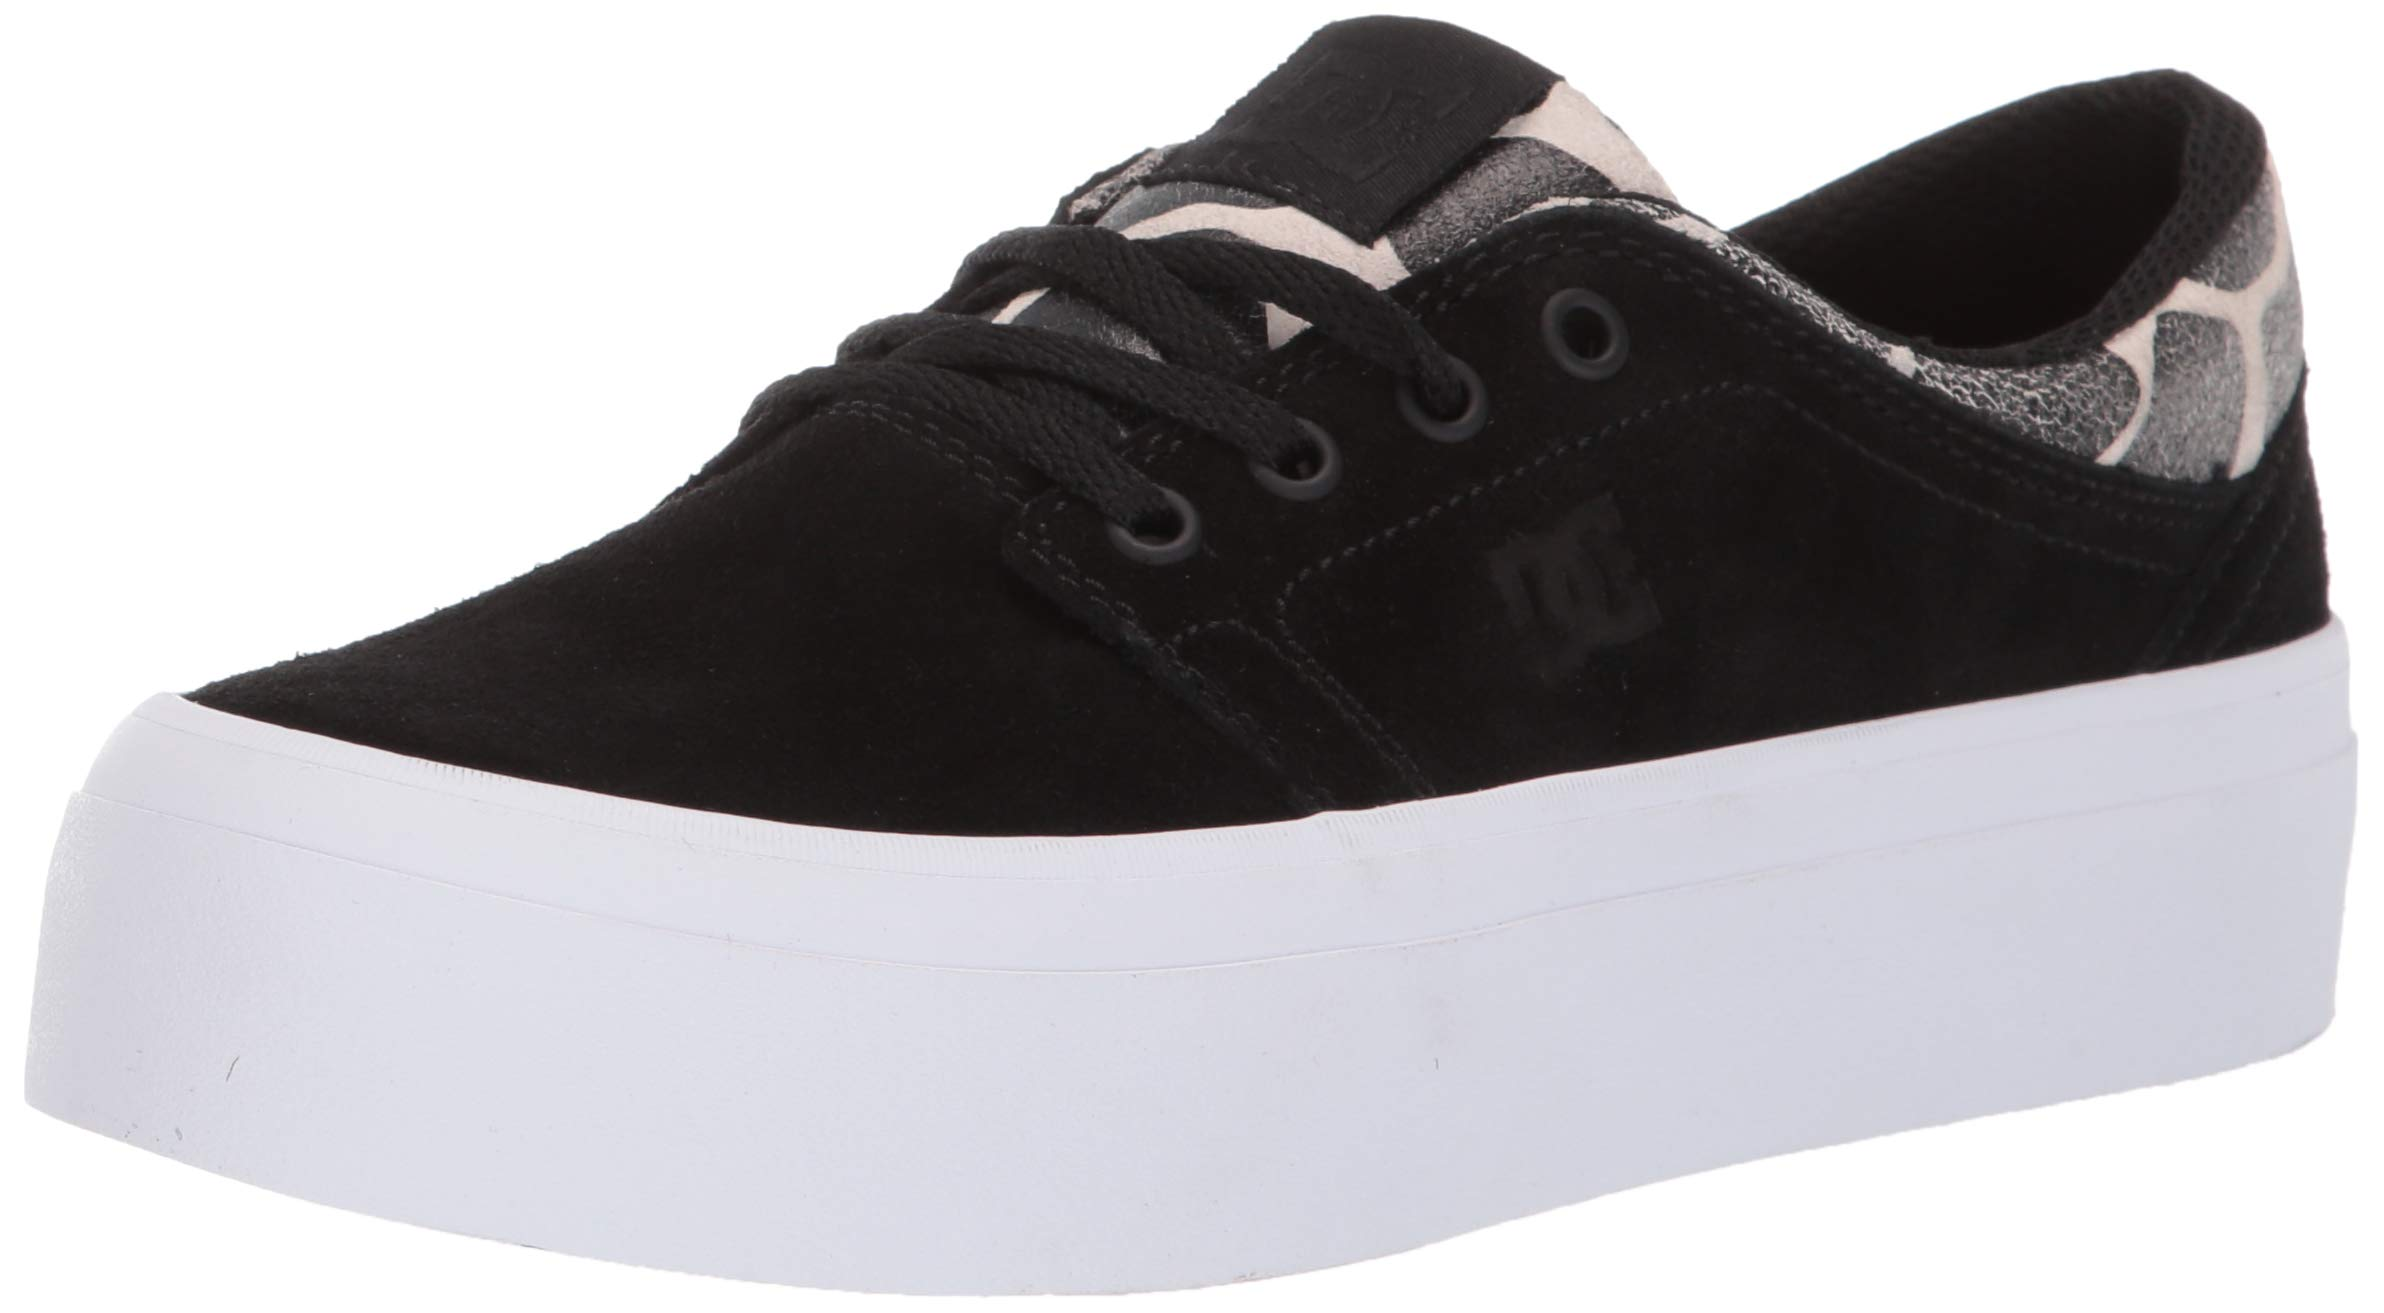 DC Women's Trase Platform SE Skate Shoe, Black/tan, 8 M US by DC